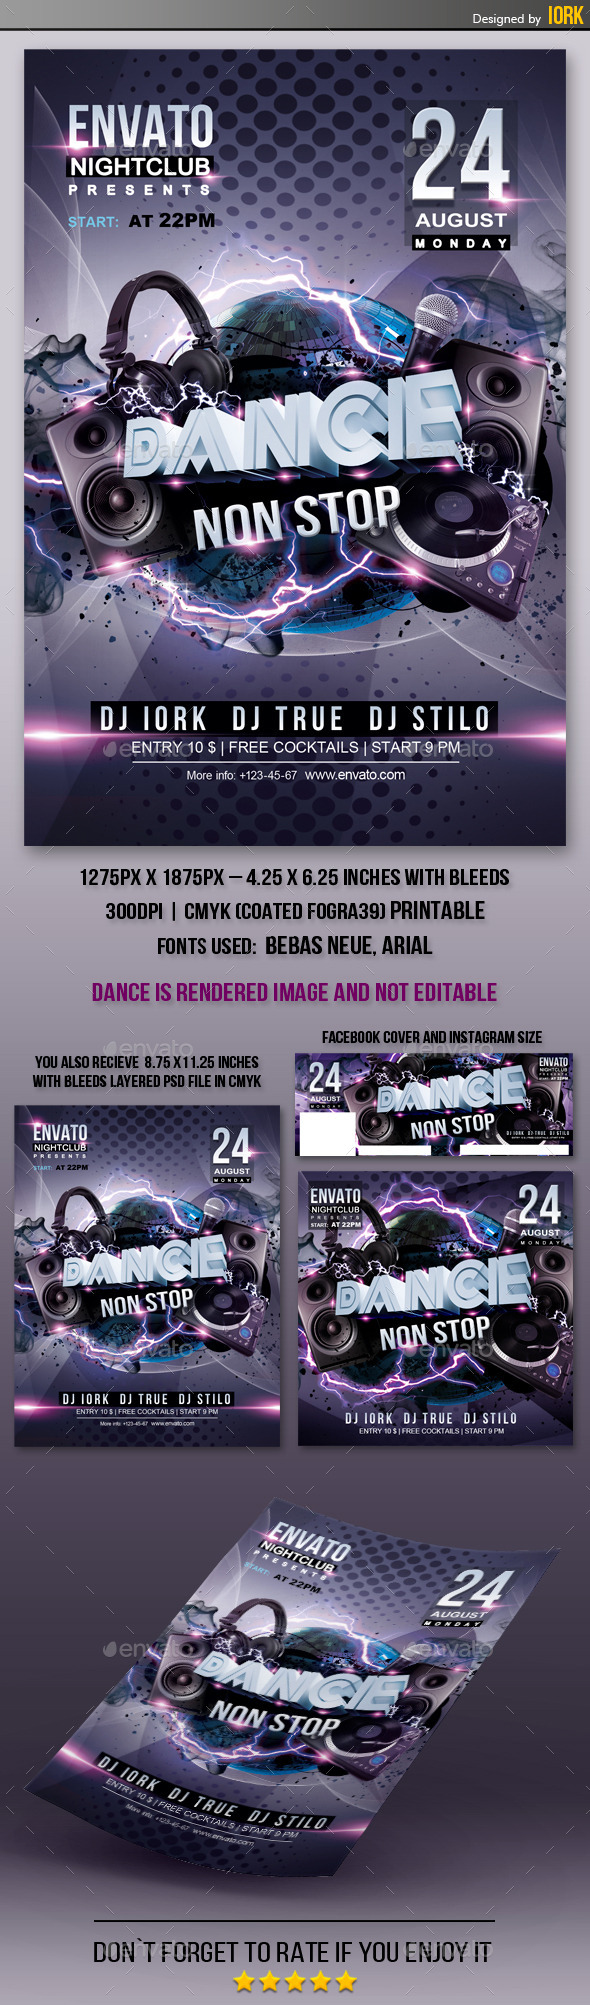 Dance Non Stop Flyer - Clubs & Parties Events